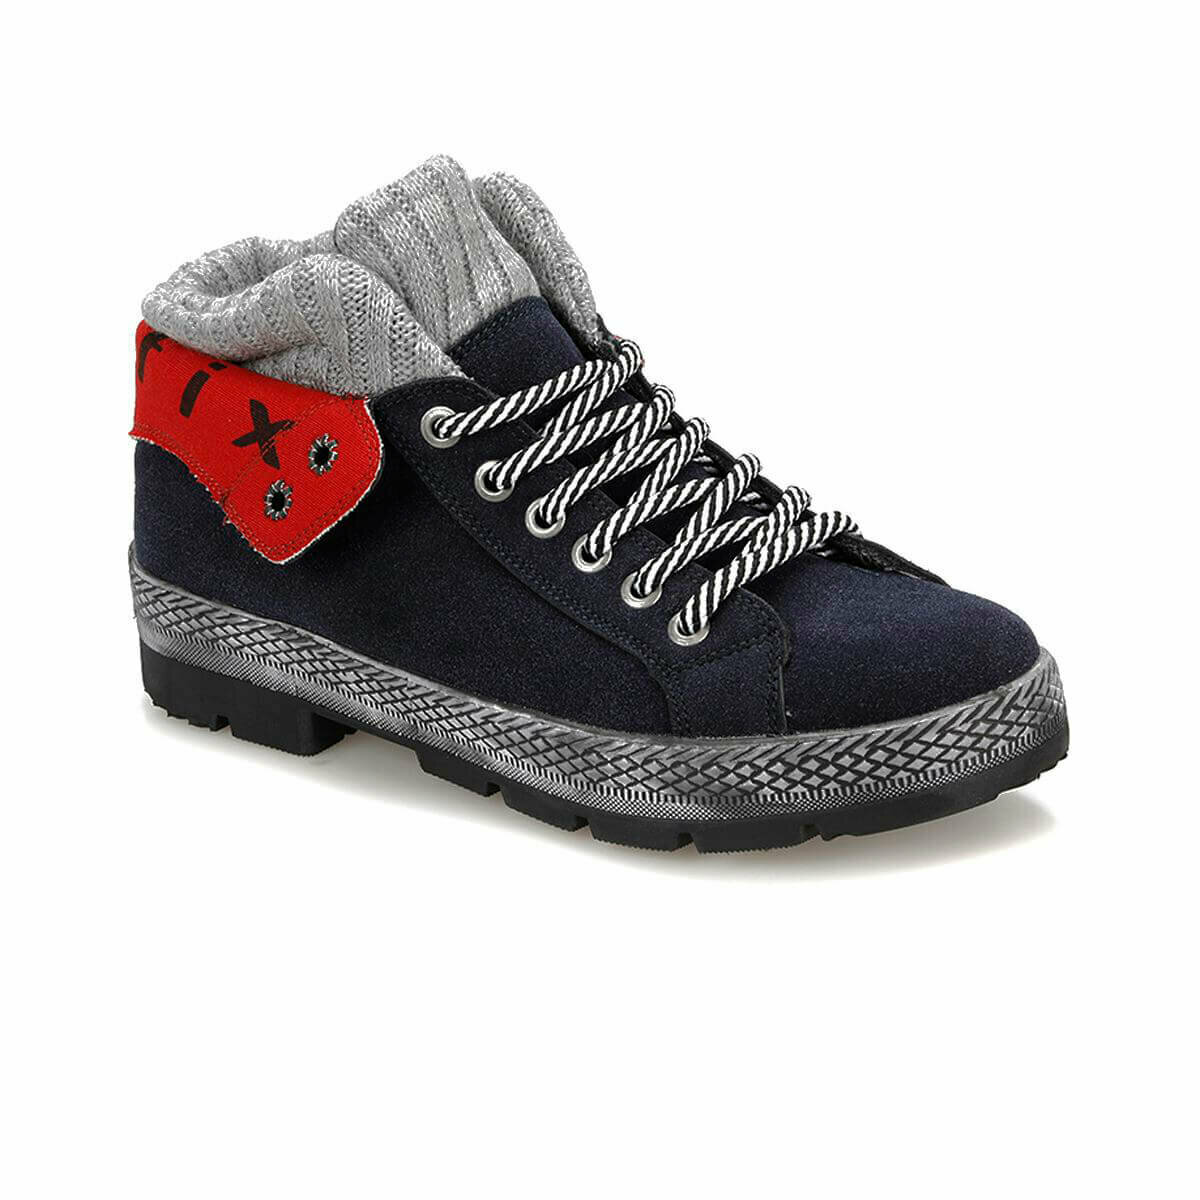 FLO REMI G Navy Blue Male Child Boots KINETIX